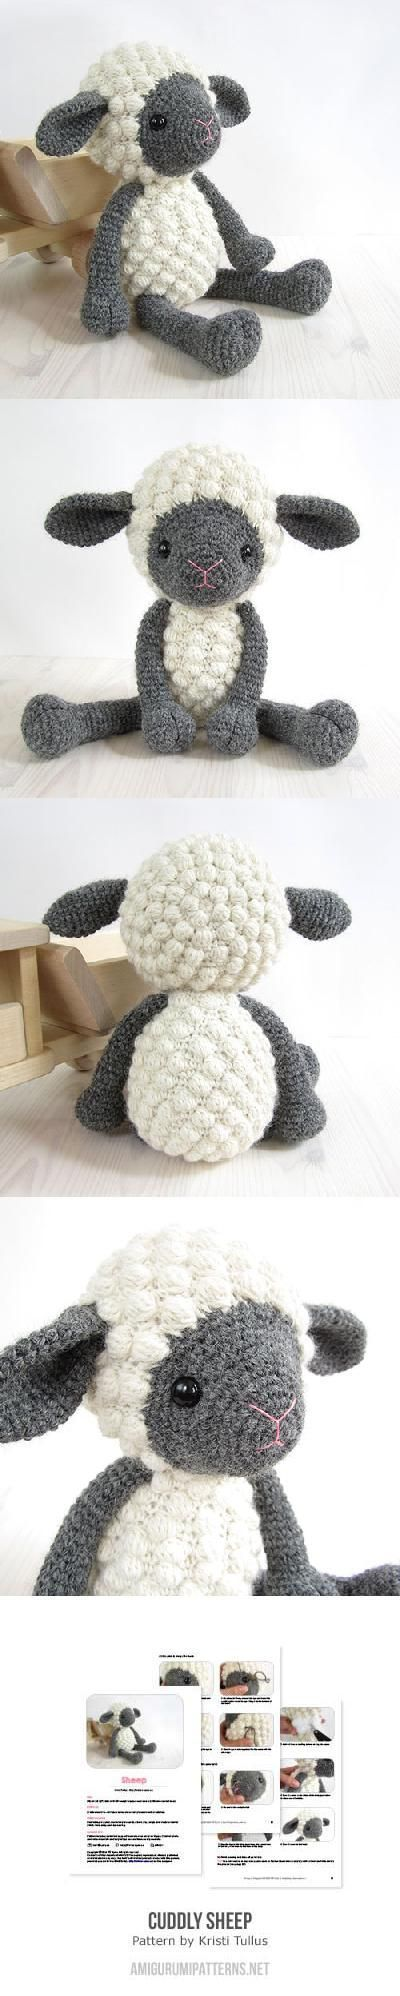 Repeat After me Crochet: Cuddly sheep amigurumi pattern